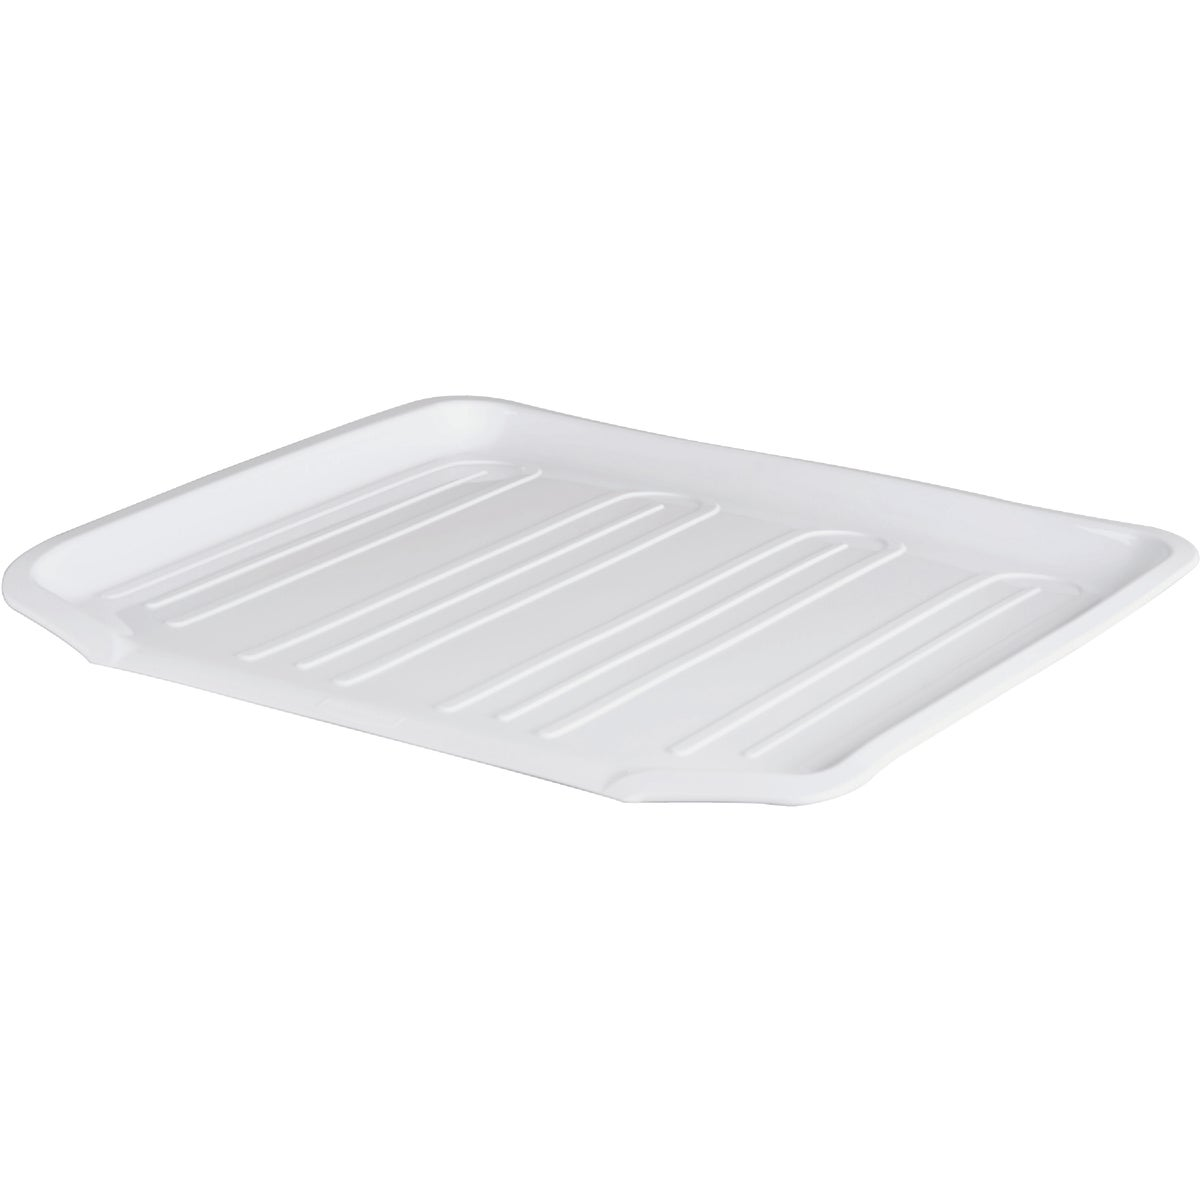 WHITE DRAINER TRAY